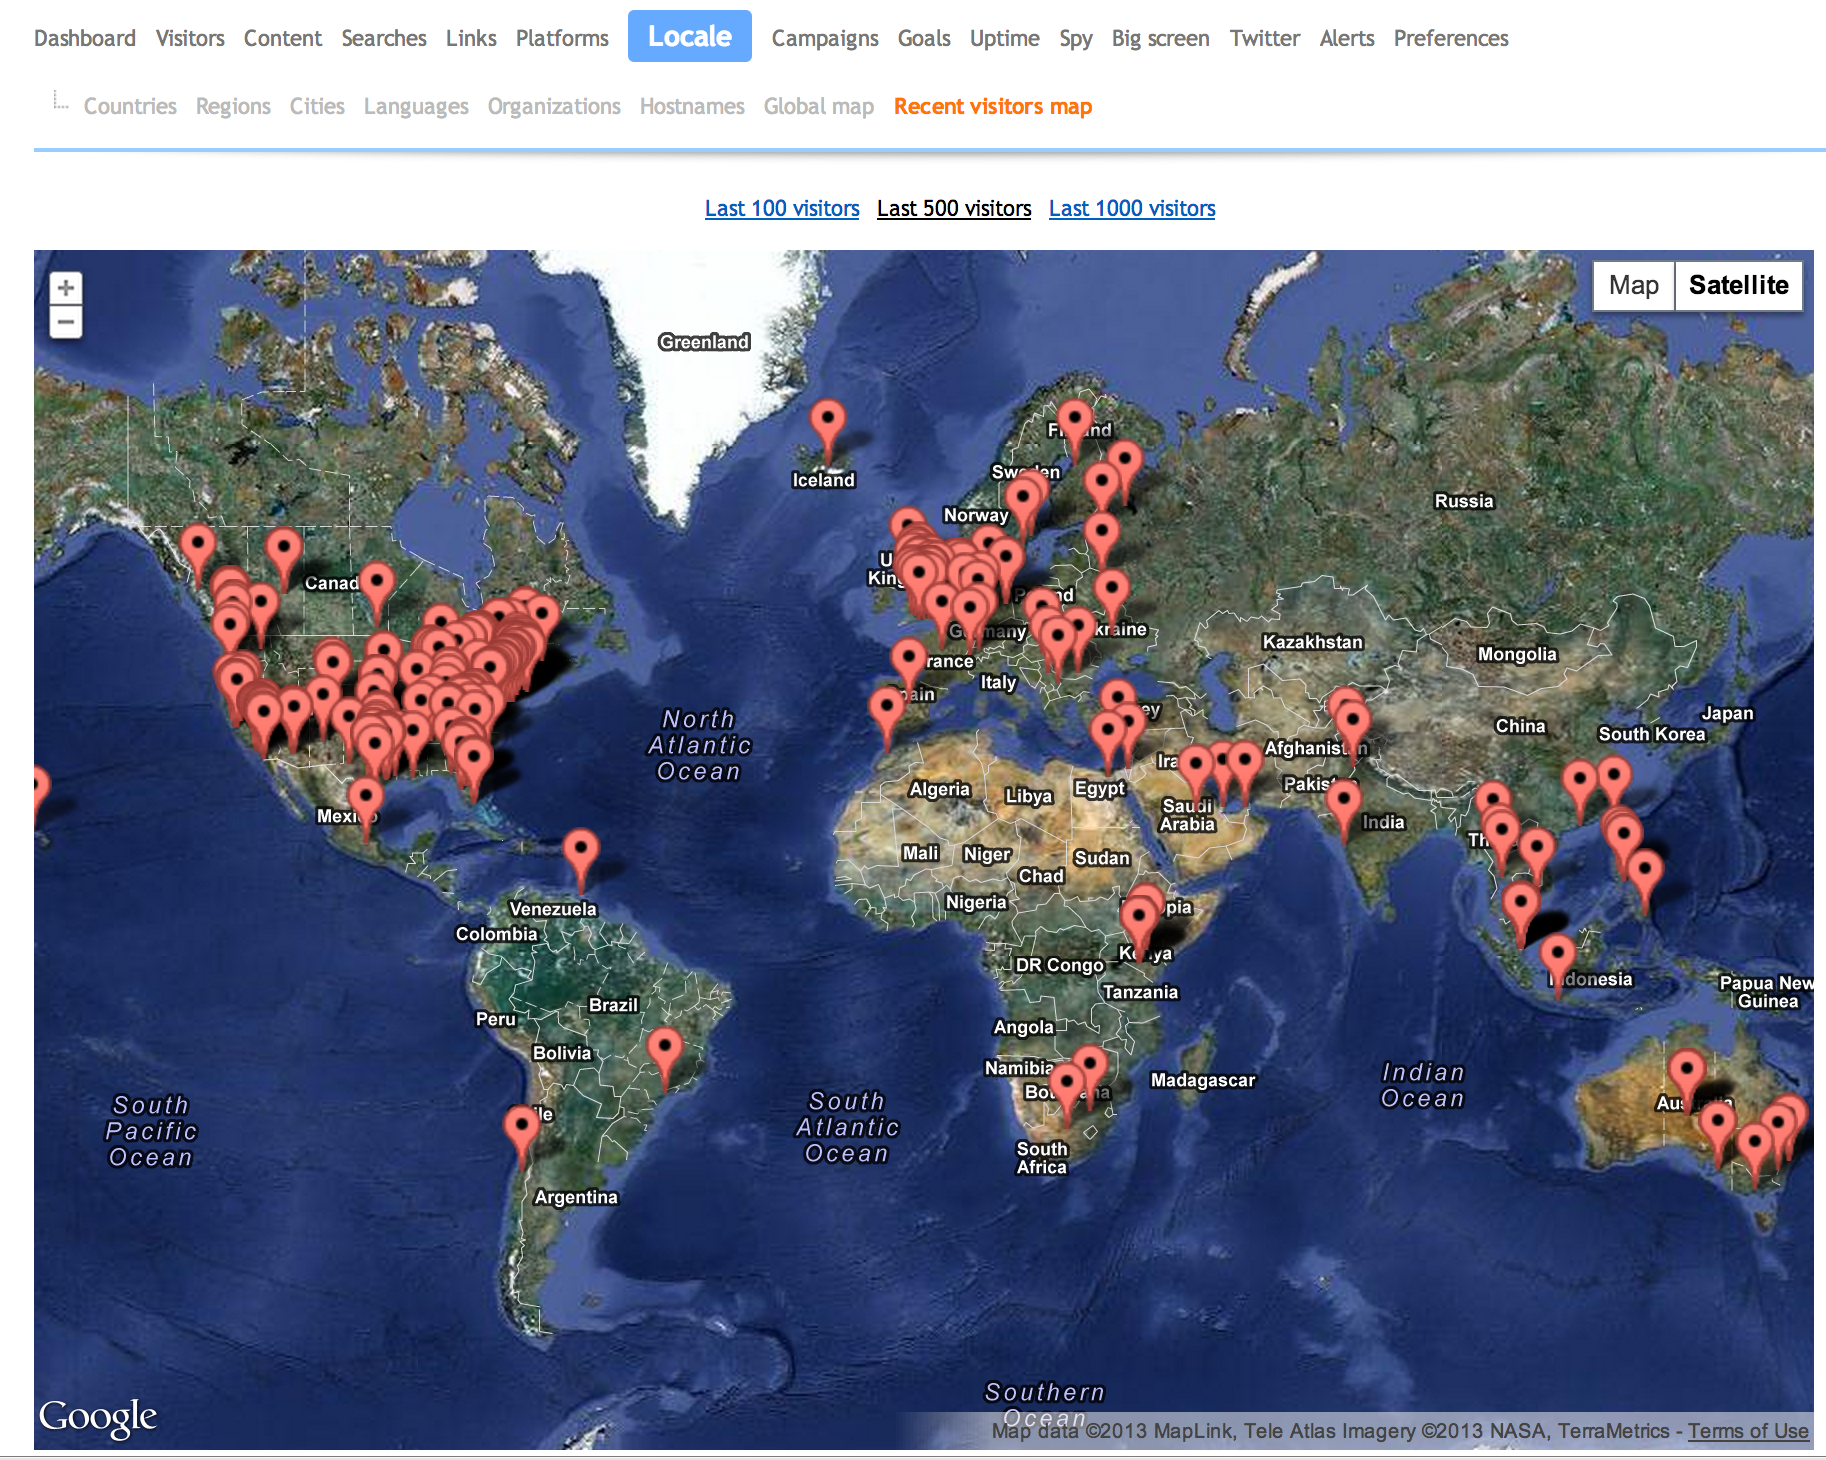 An example of a recent visitors map of this website.